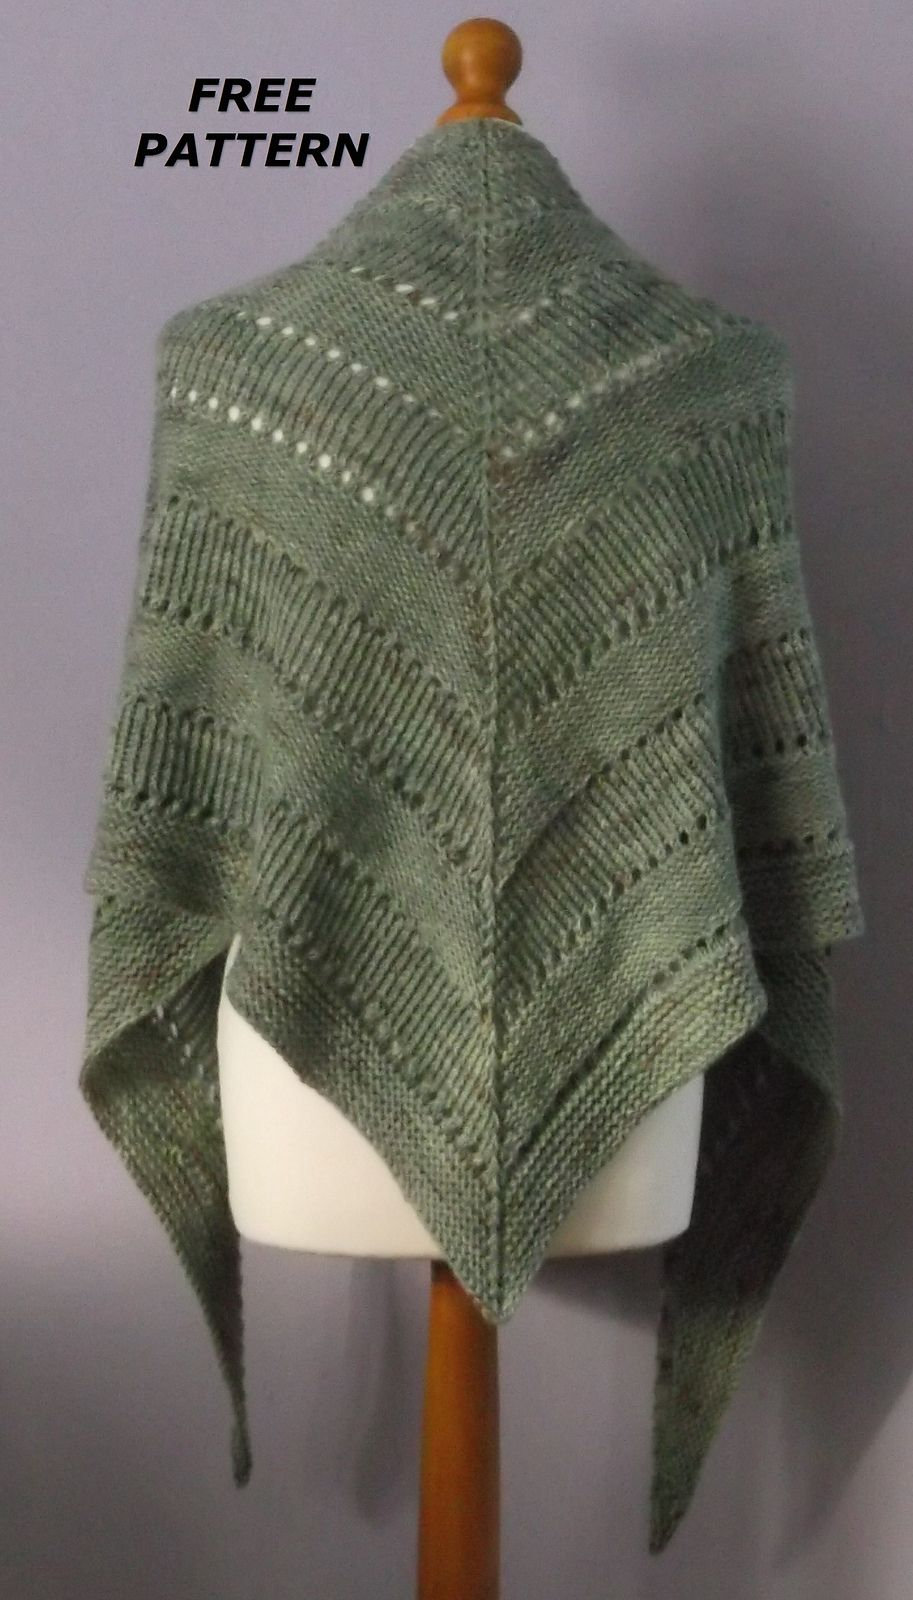 Ravelry: Mossie pattern by Brian smith | Knitting ideas | Pinterest ...